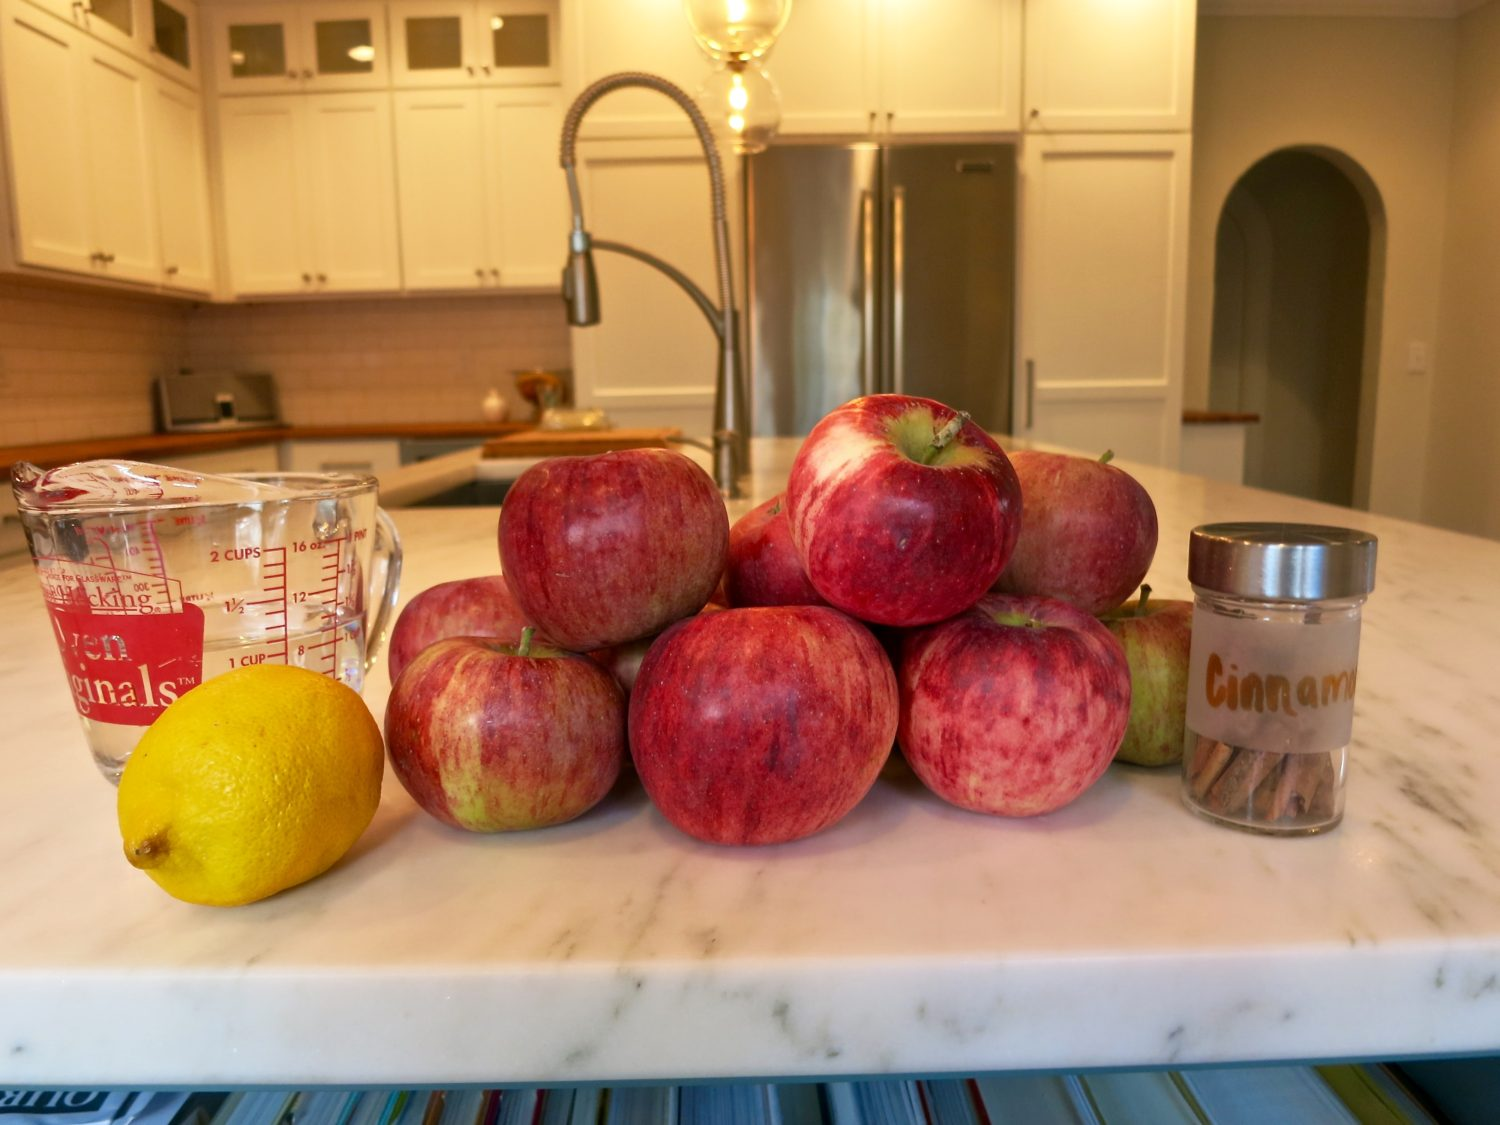 Apple sauce ingredients